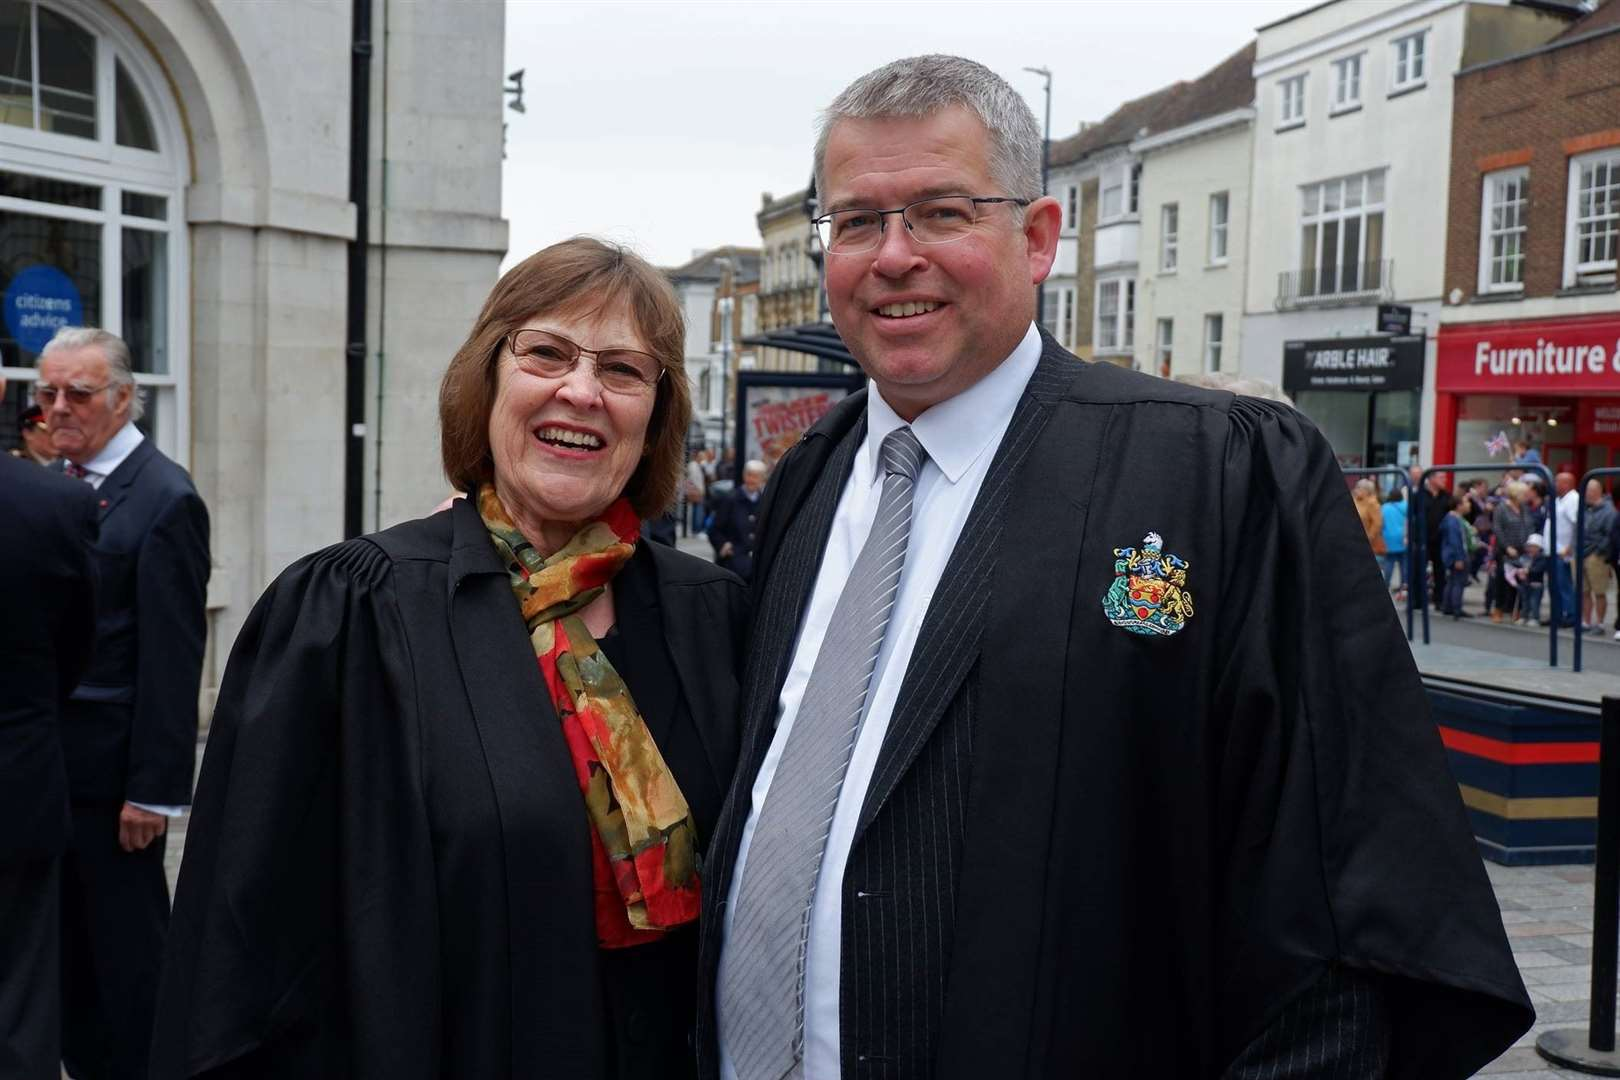 The bid for secret talks was proposed by council leader Martin Cox (right). Pictured with Cllr Fay Gooch.